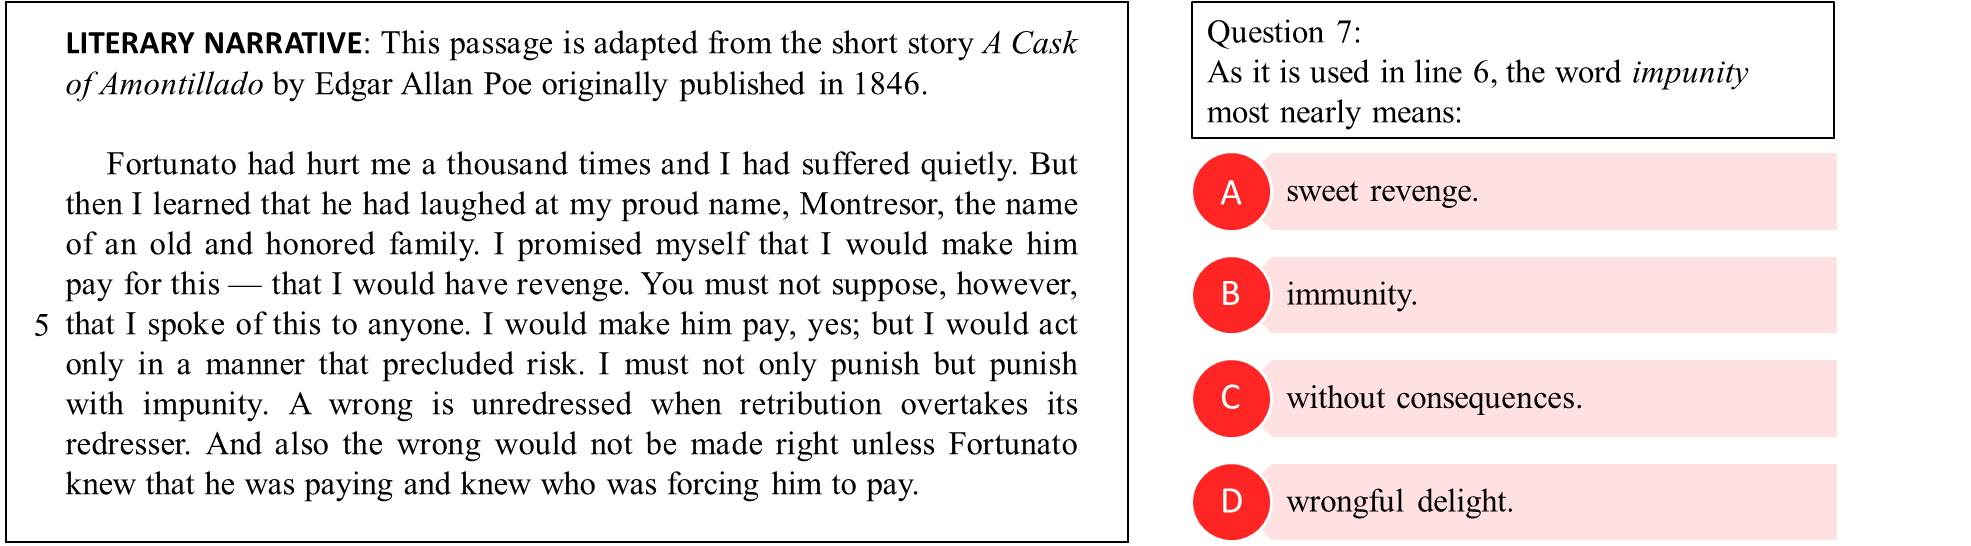 Example of ACT Reading Question